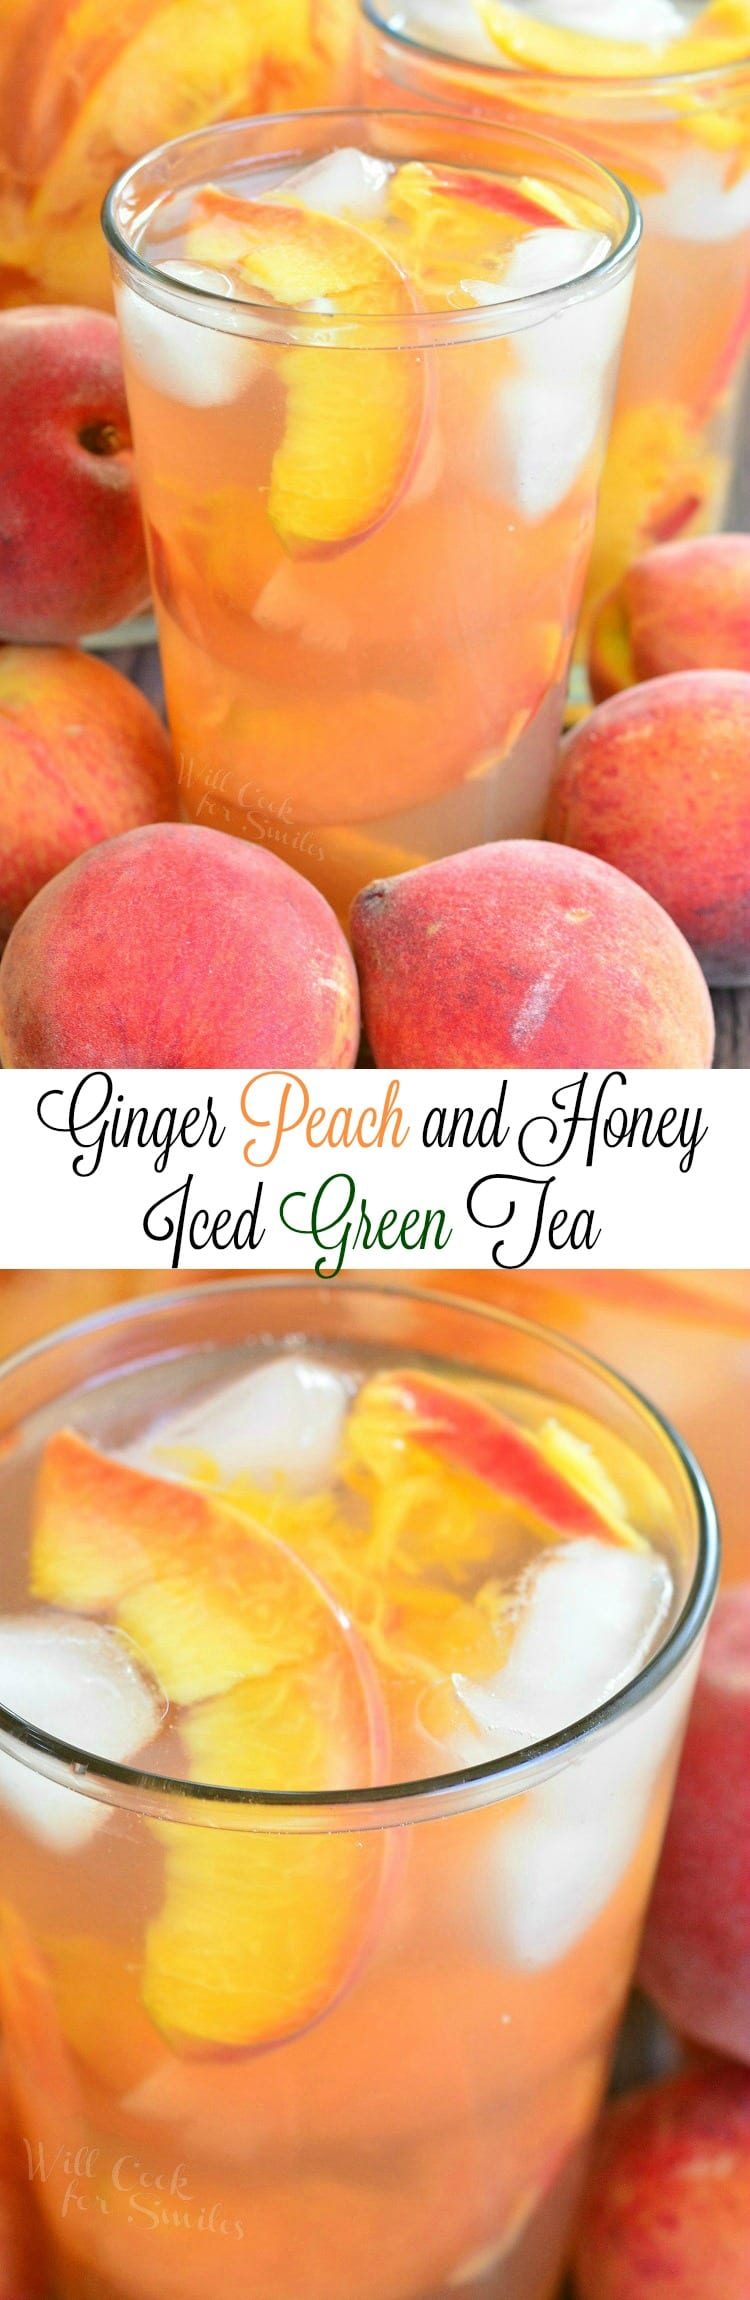 Ginger Peach and Honey Iced Green Tea. Beautiful, mild and refreshing drink to enjoy on these lazy summer days.